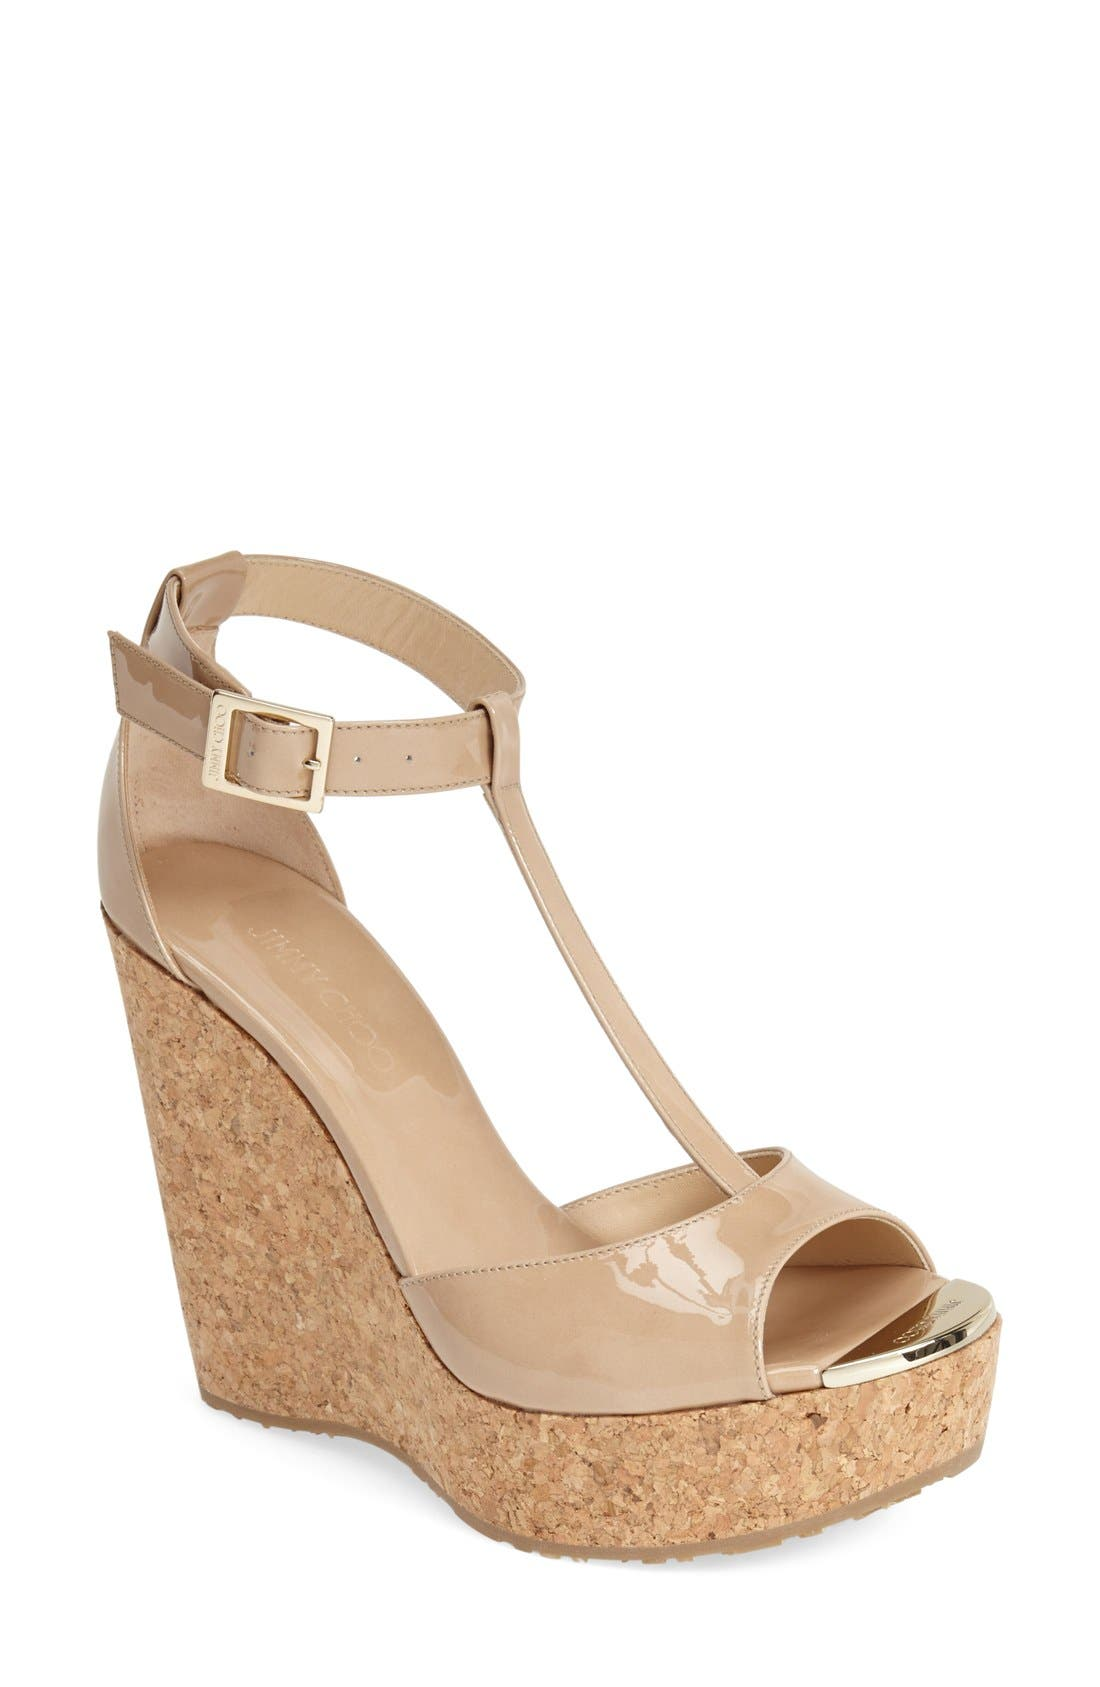 Main Image - Jimmy Choo 'Pela' Cork Wedge Sandal (Women)